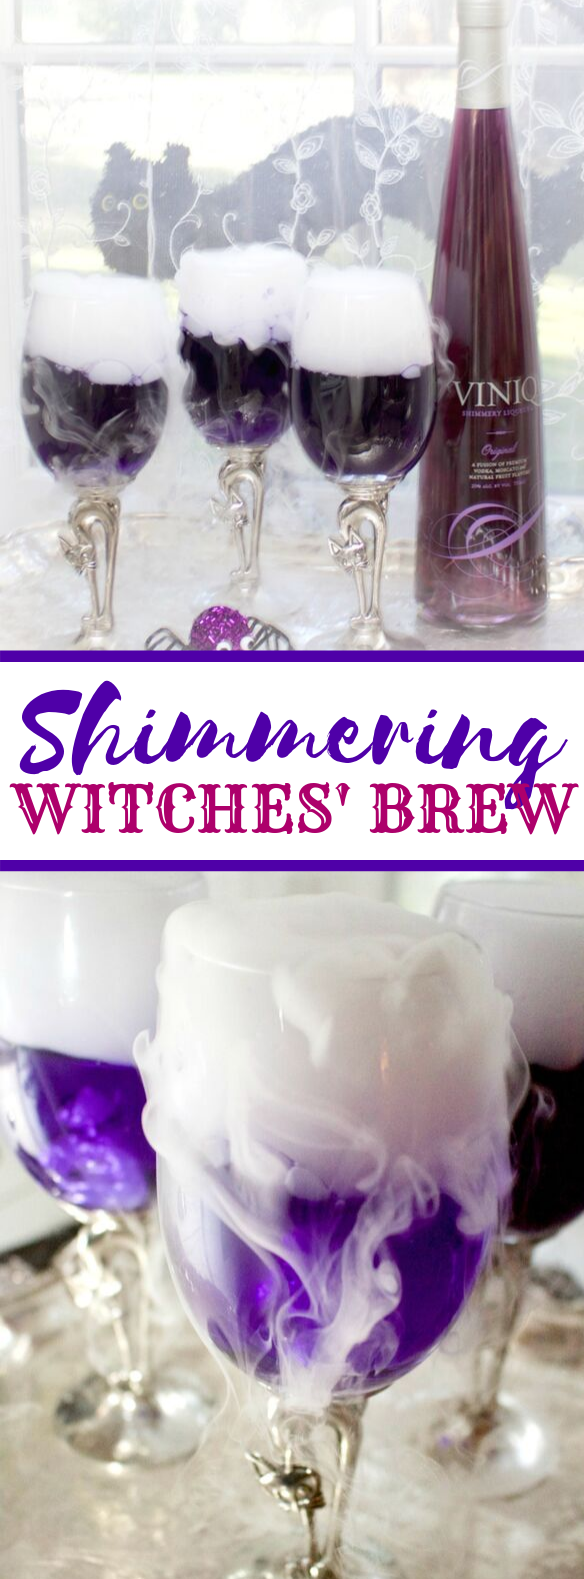 Shimmering Witches' Brew #drinks #cocktails